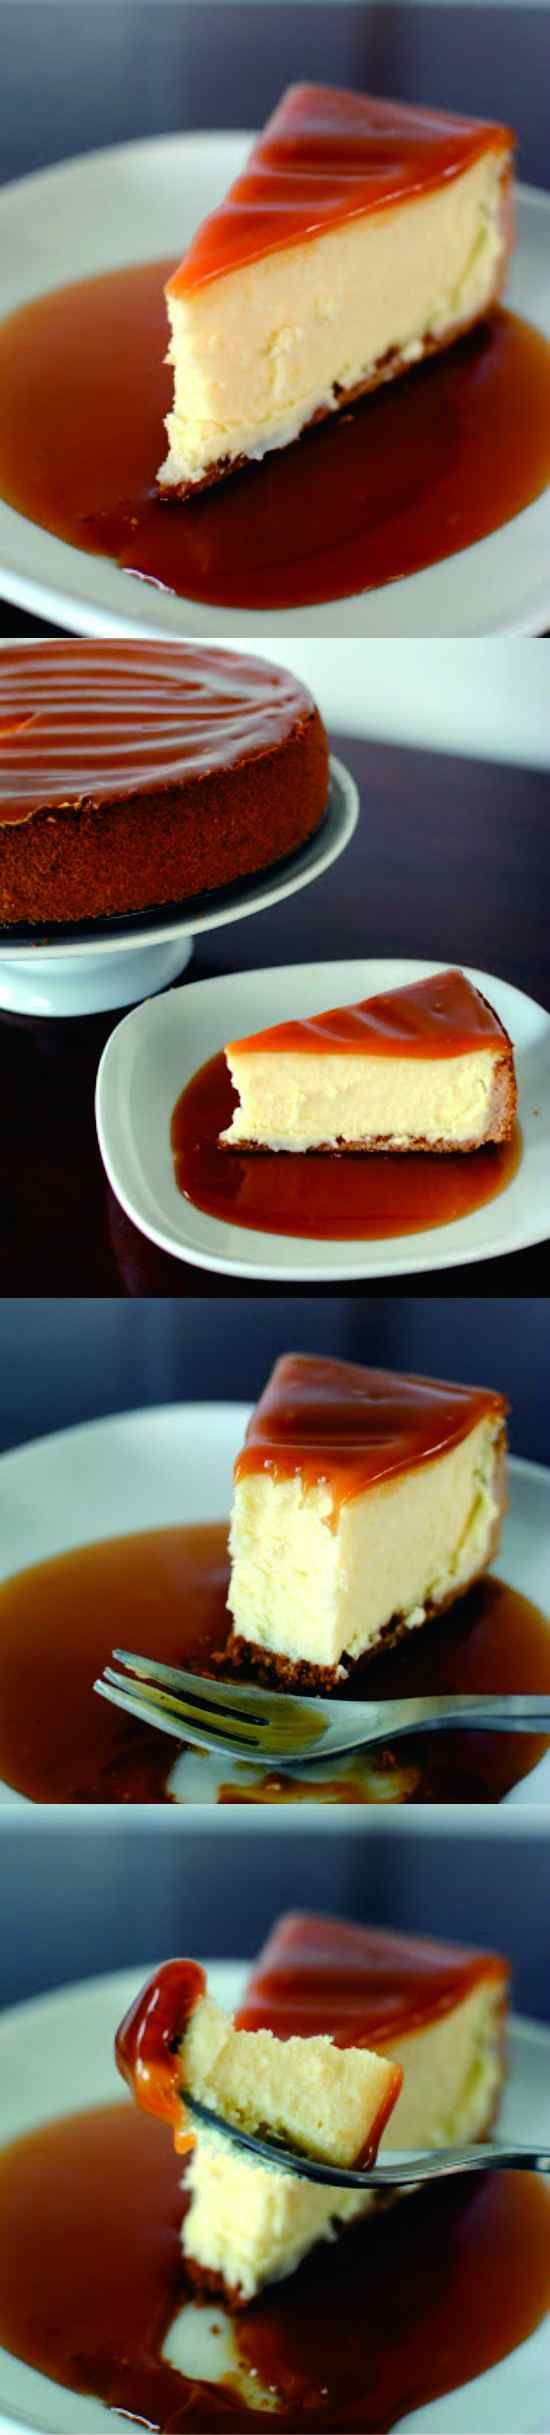 White Chocolate Cheesecake with Caramel Glaze - baked, cake, caramel, cheese, cheesecake, chocolate, crackers, cream, crust, dessert, juice, lemon, recipes, vanilla, white chocolate